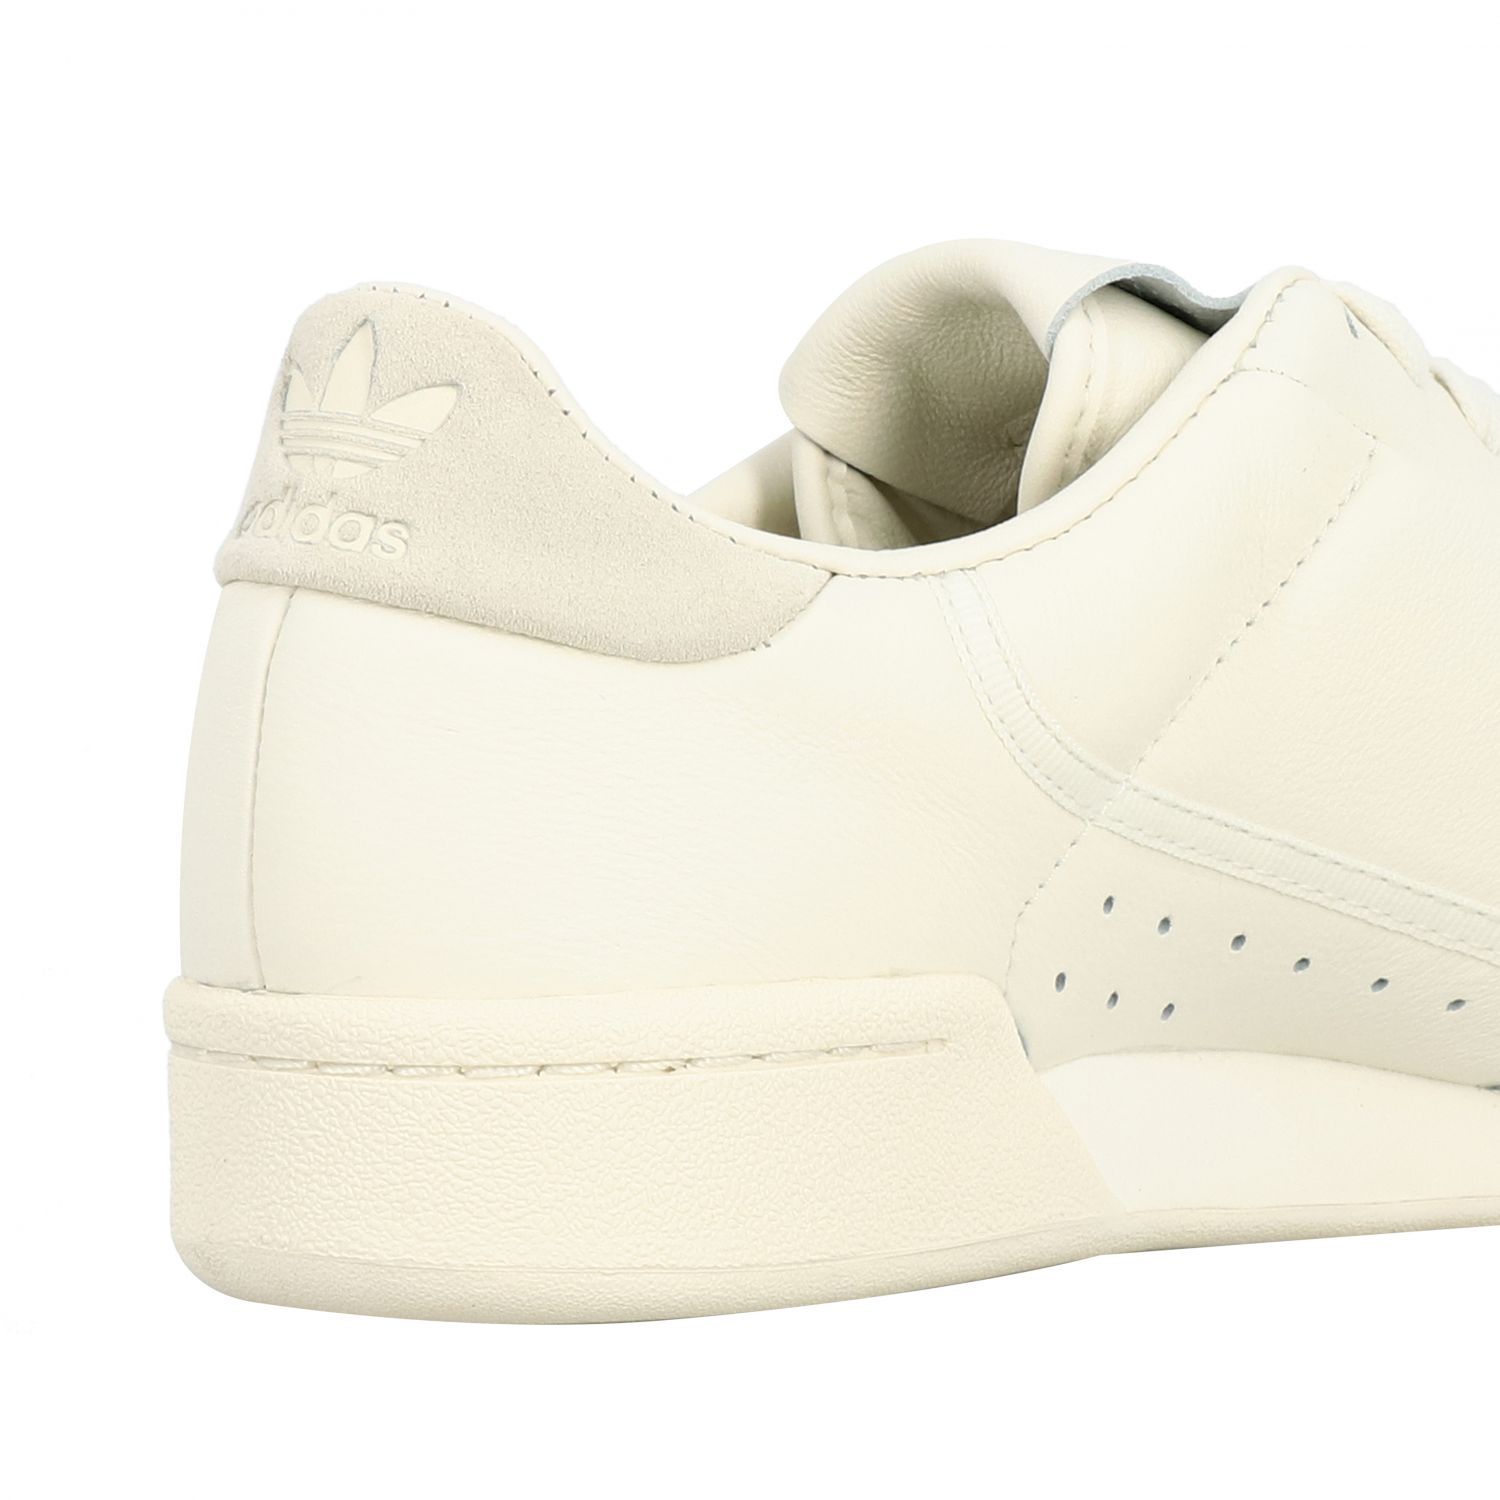 Sneakers Adidas Originals: Continental 80 Adidas Originals Sneakers aus Leder yellow cream 5